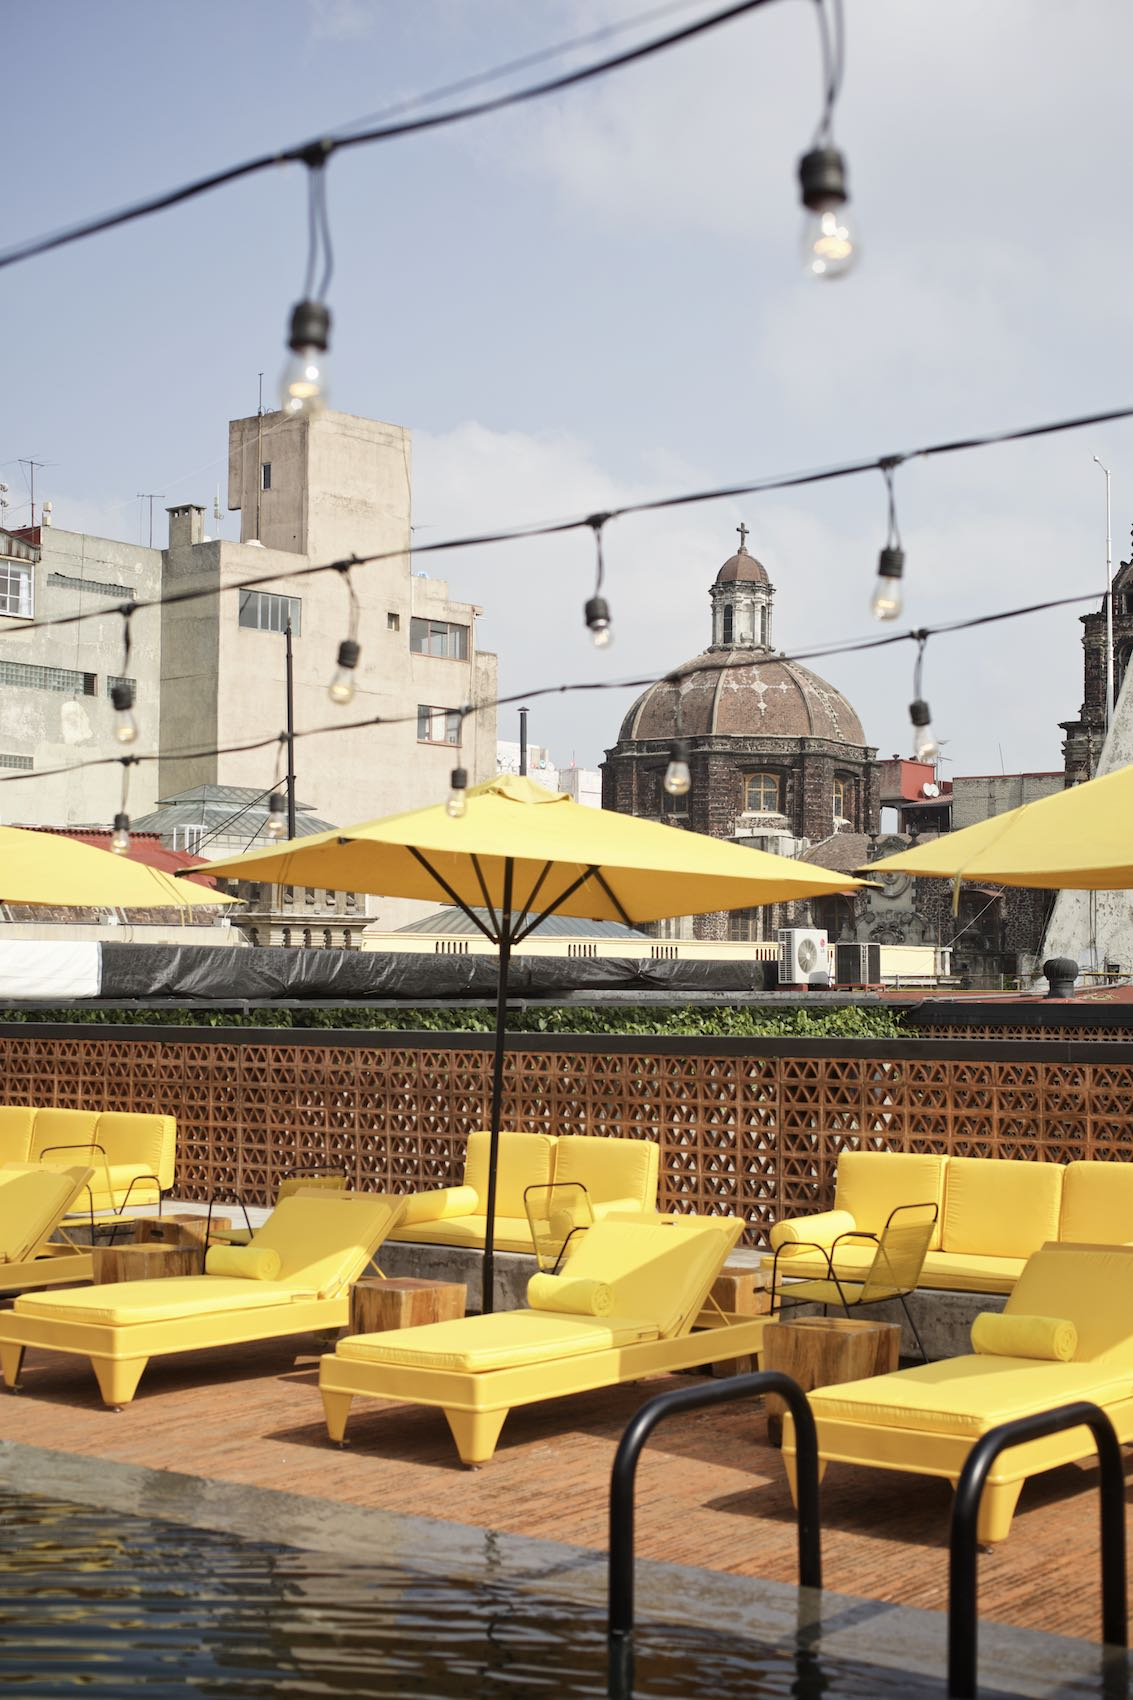 Hotel pool with vibrant yellow furniture in Mexico City.